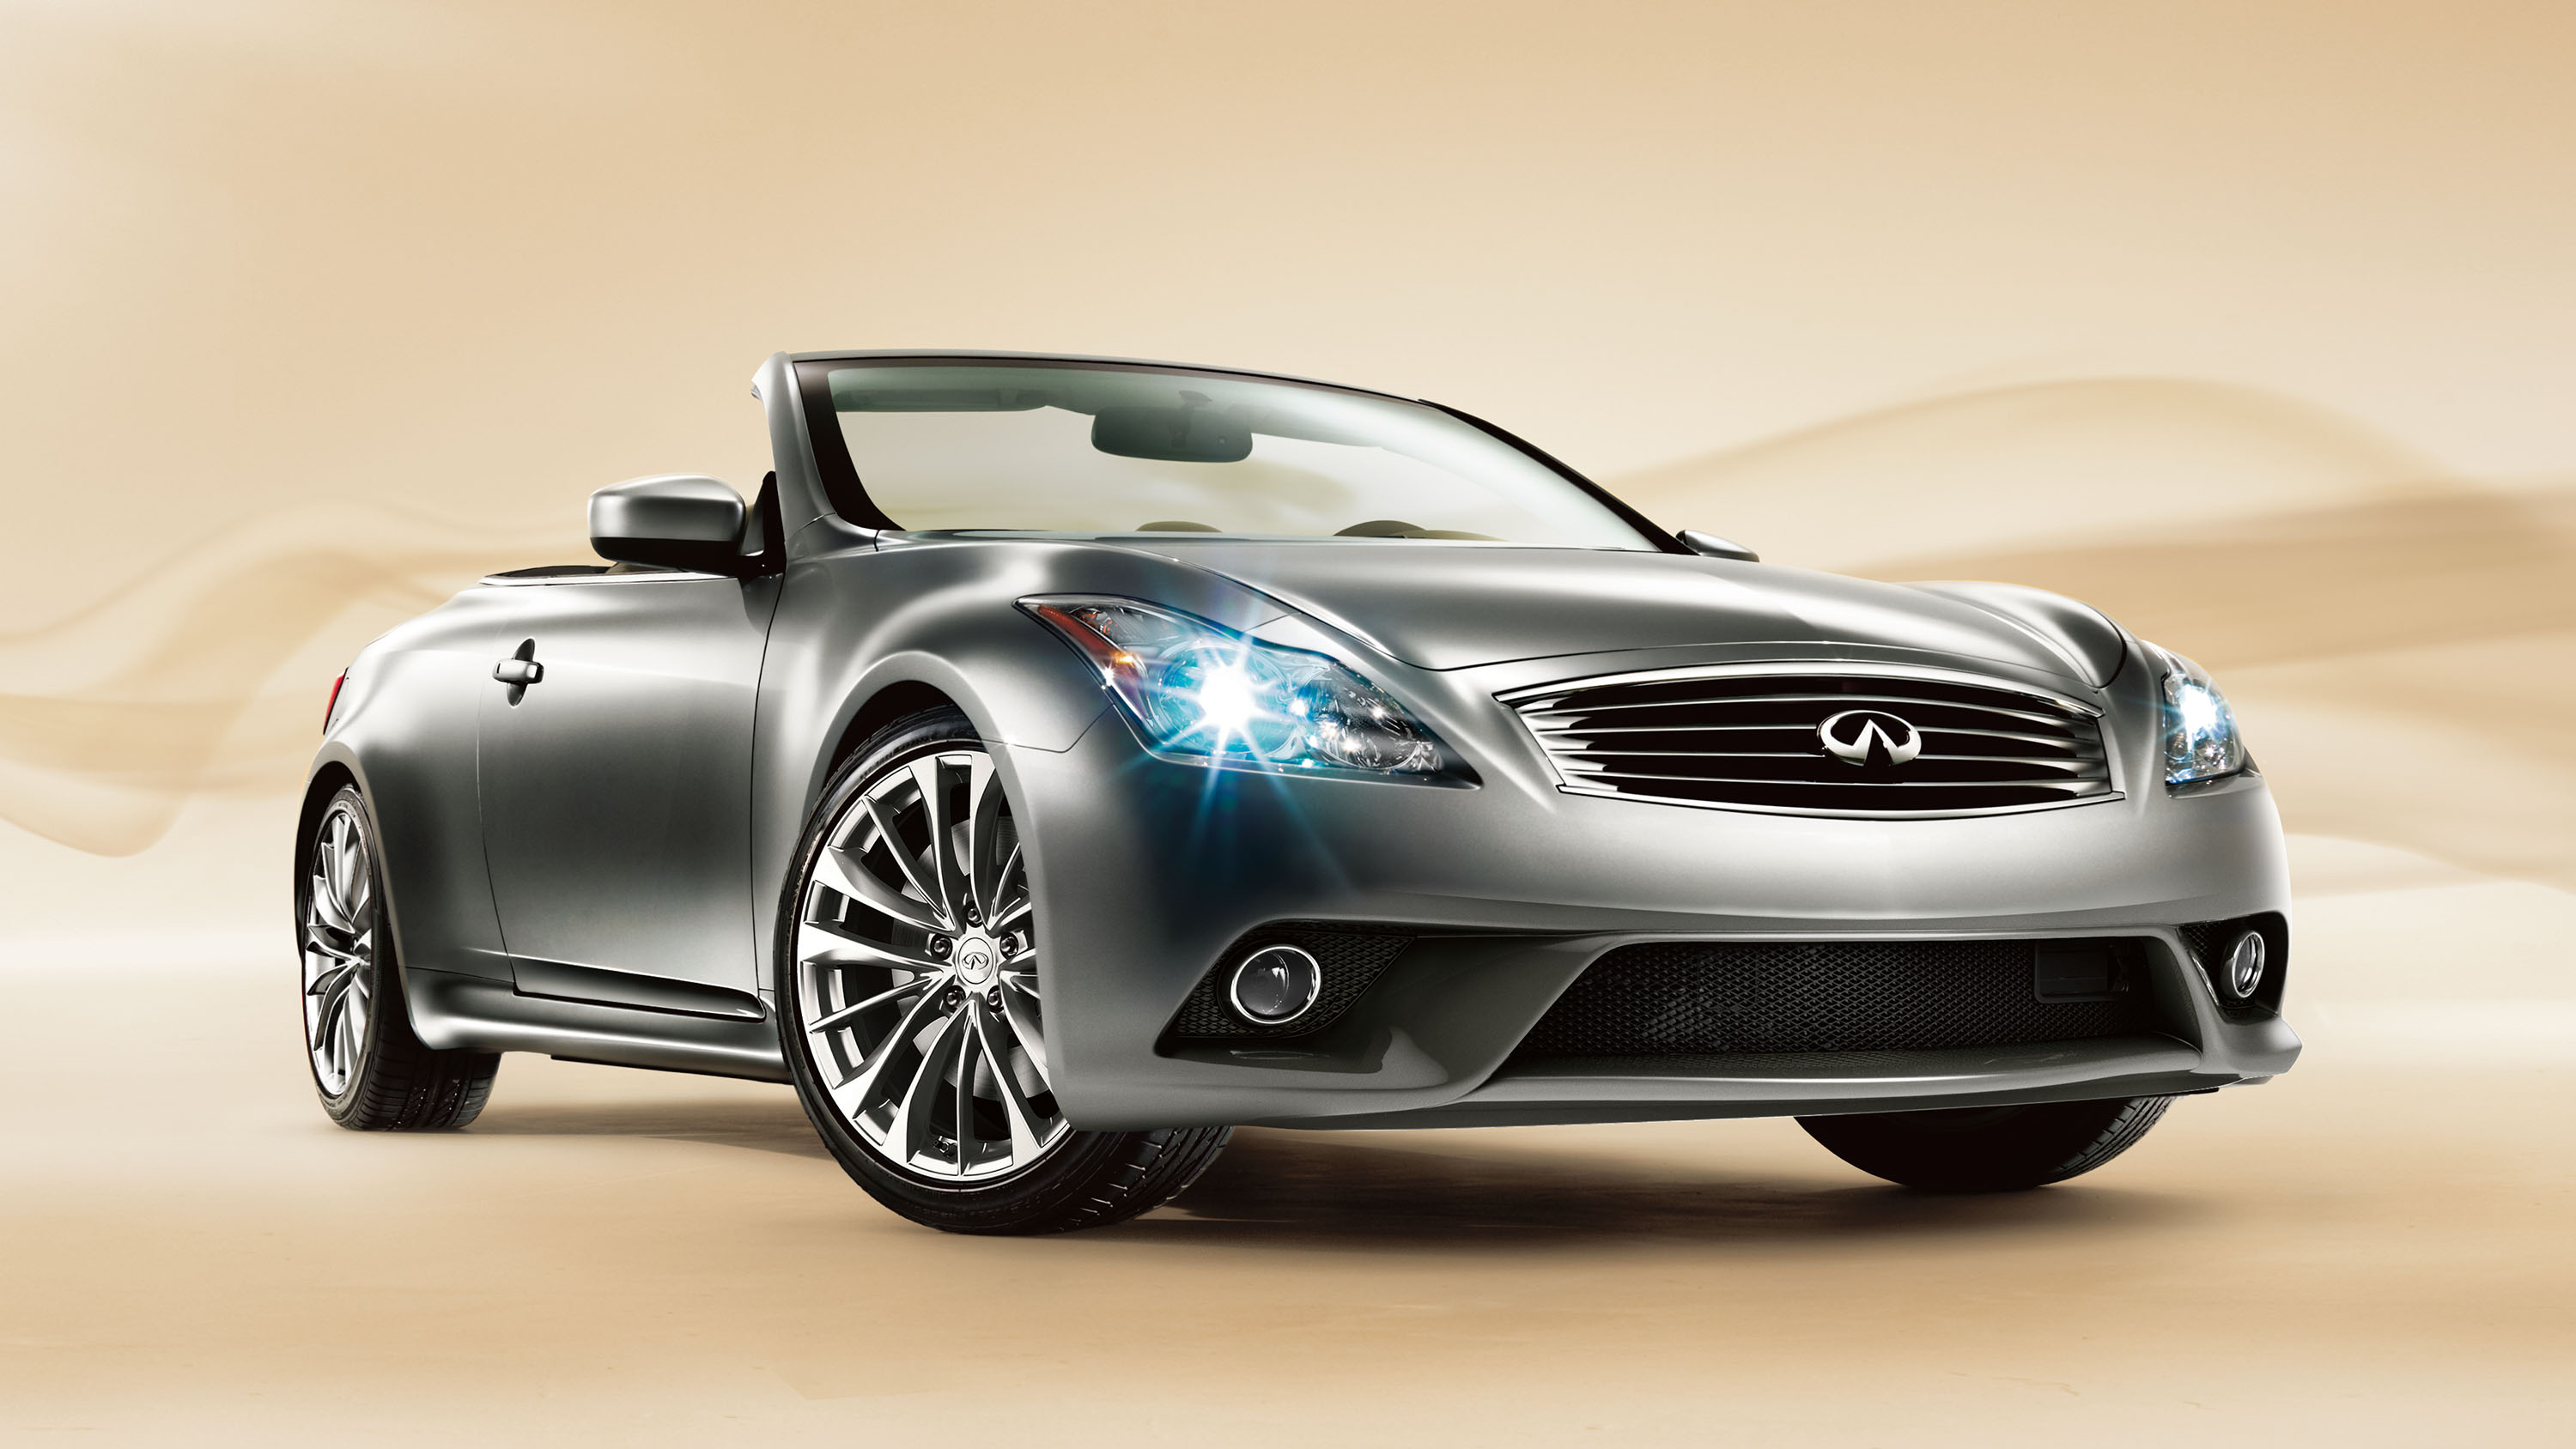 moonlight research large white sport convertible groovecar infiniti infinity composite